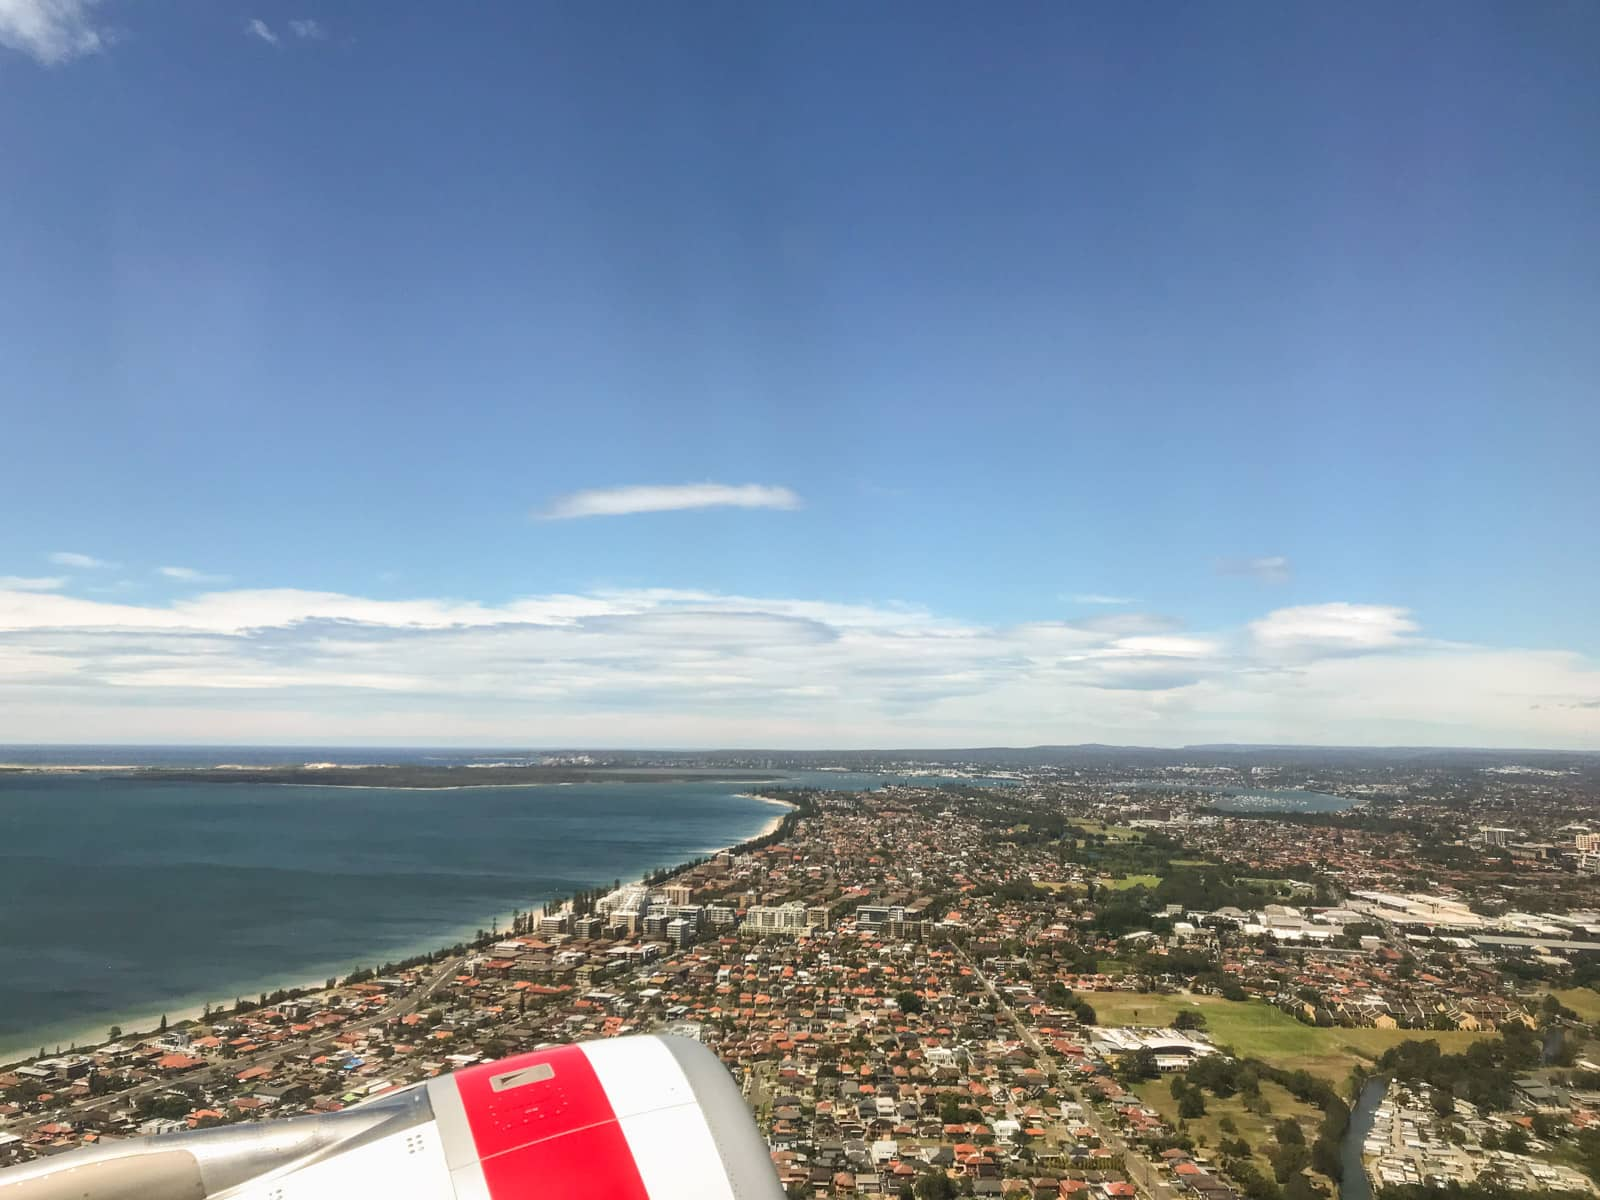 The view from the side of a plane, of the city of Sydney. It is during the day and the sky is blue